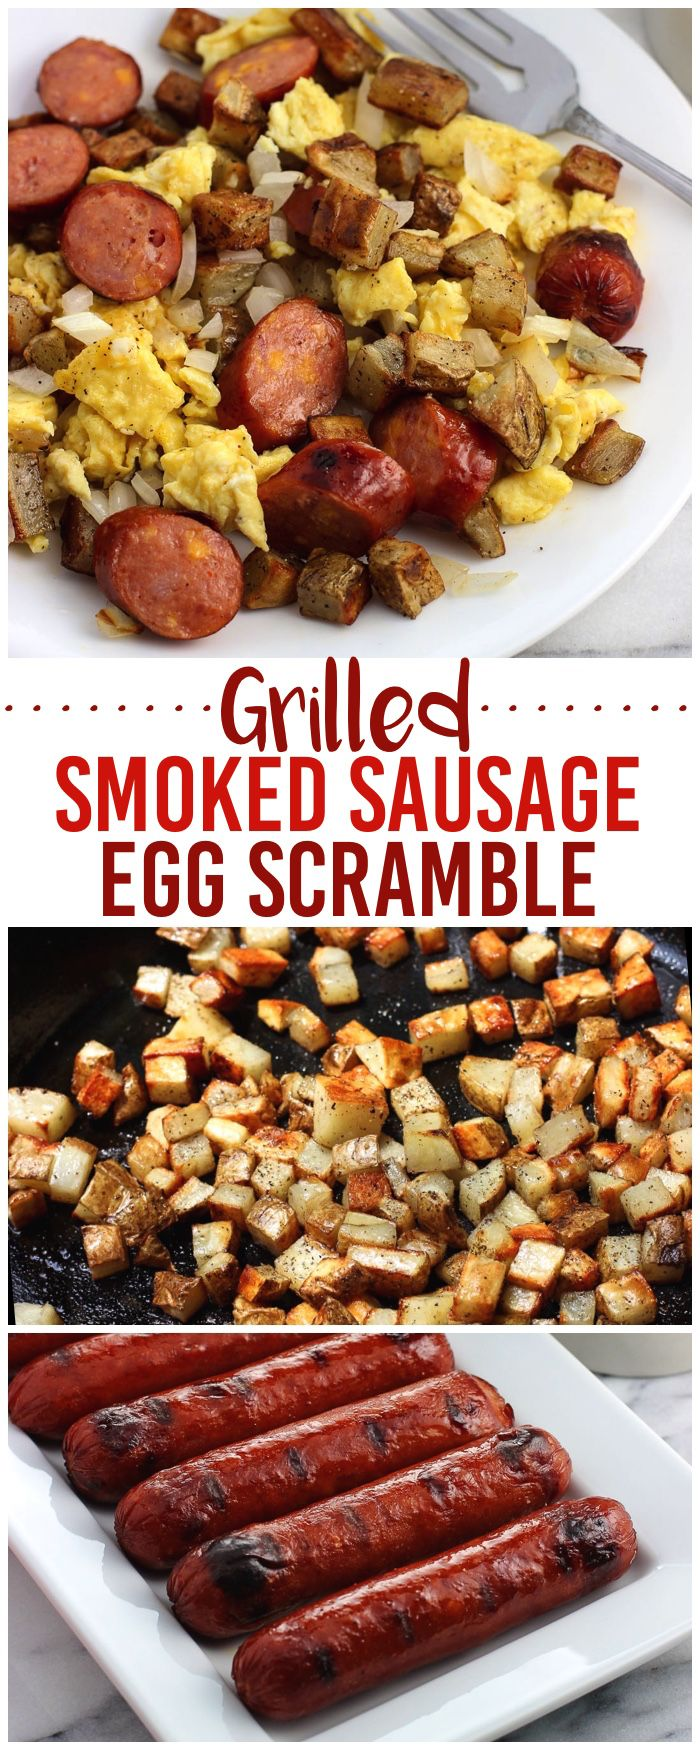 Enjoy breakfast made entirely on the grill with this grilled smoked sausage breakfast egg scramble! A cast iron pan and the grill are all you need to prepare crispy potatoes, grilled onion, scrambled eggs, and perfectly grilled smoked sausage for a satisfying savory breakfast the whole family will love. #GiveLifeMoreFlavor AD